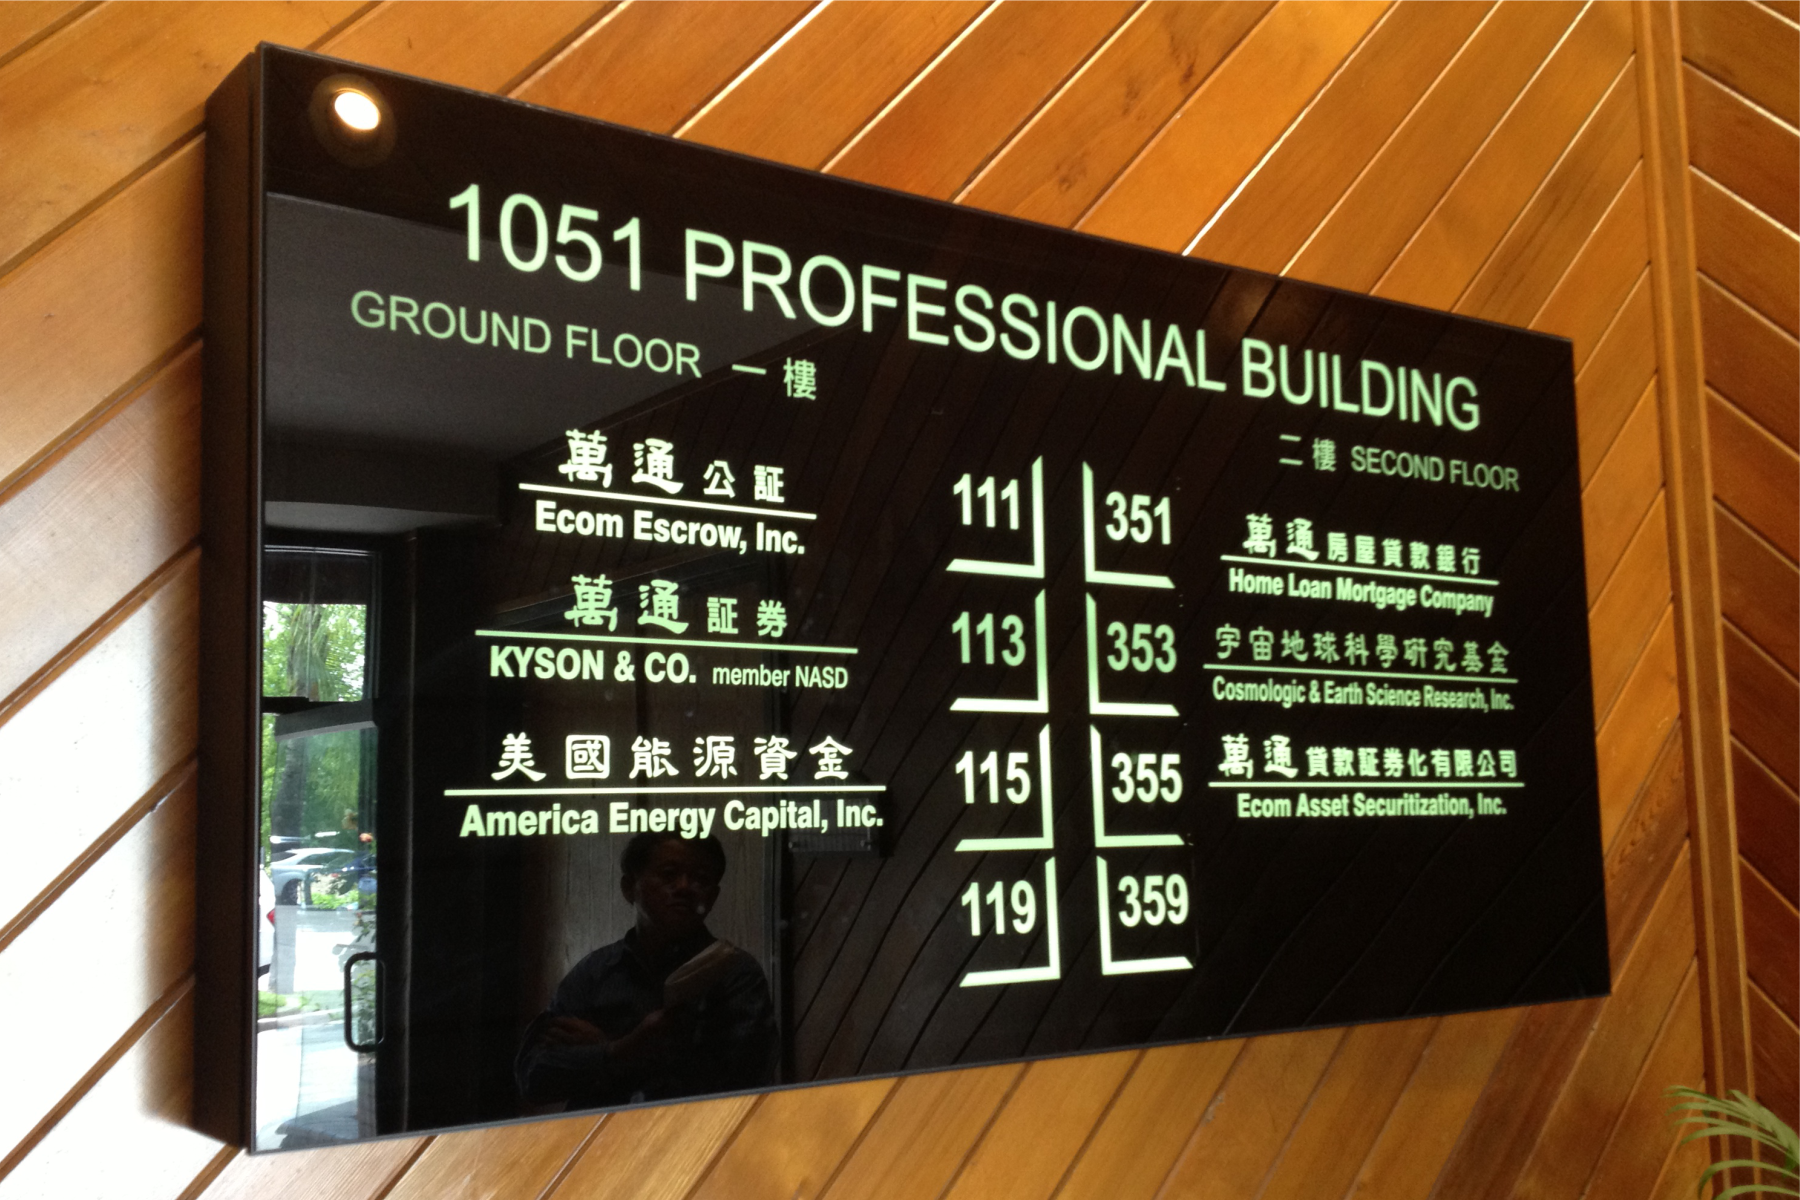 1051 Professional Building